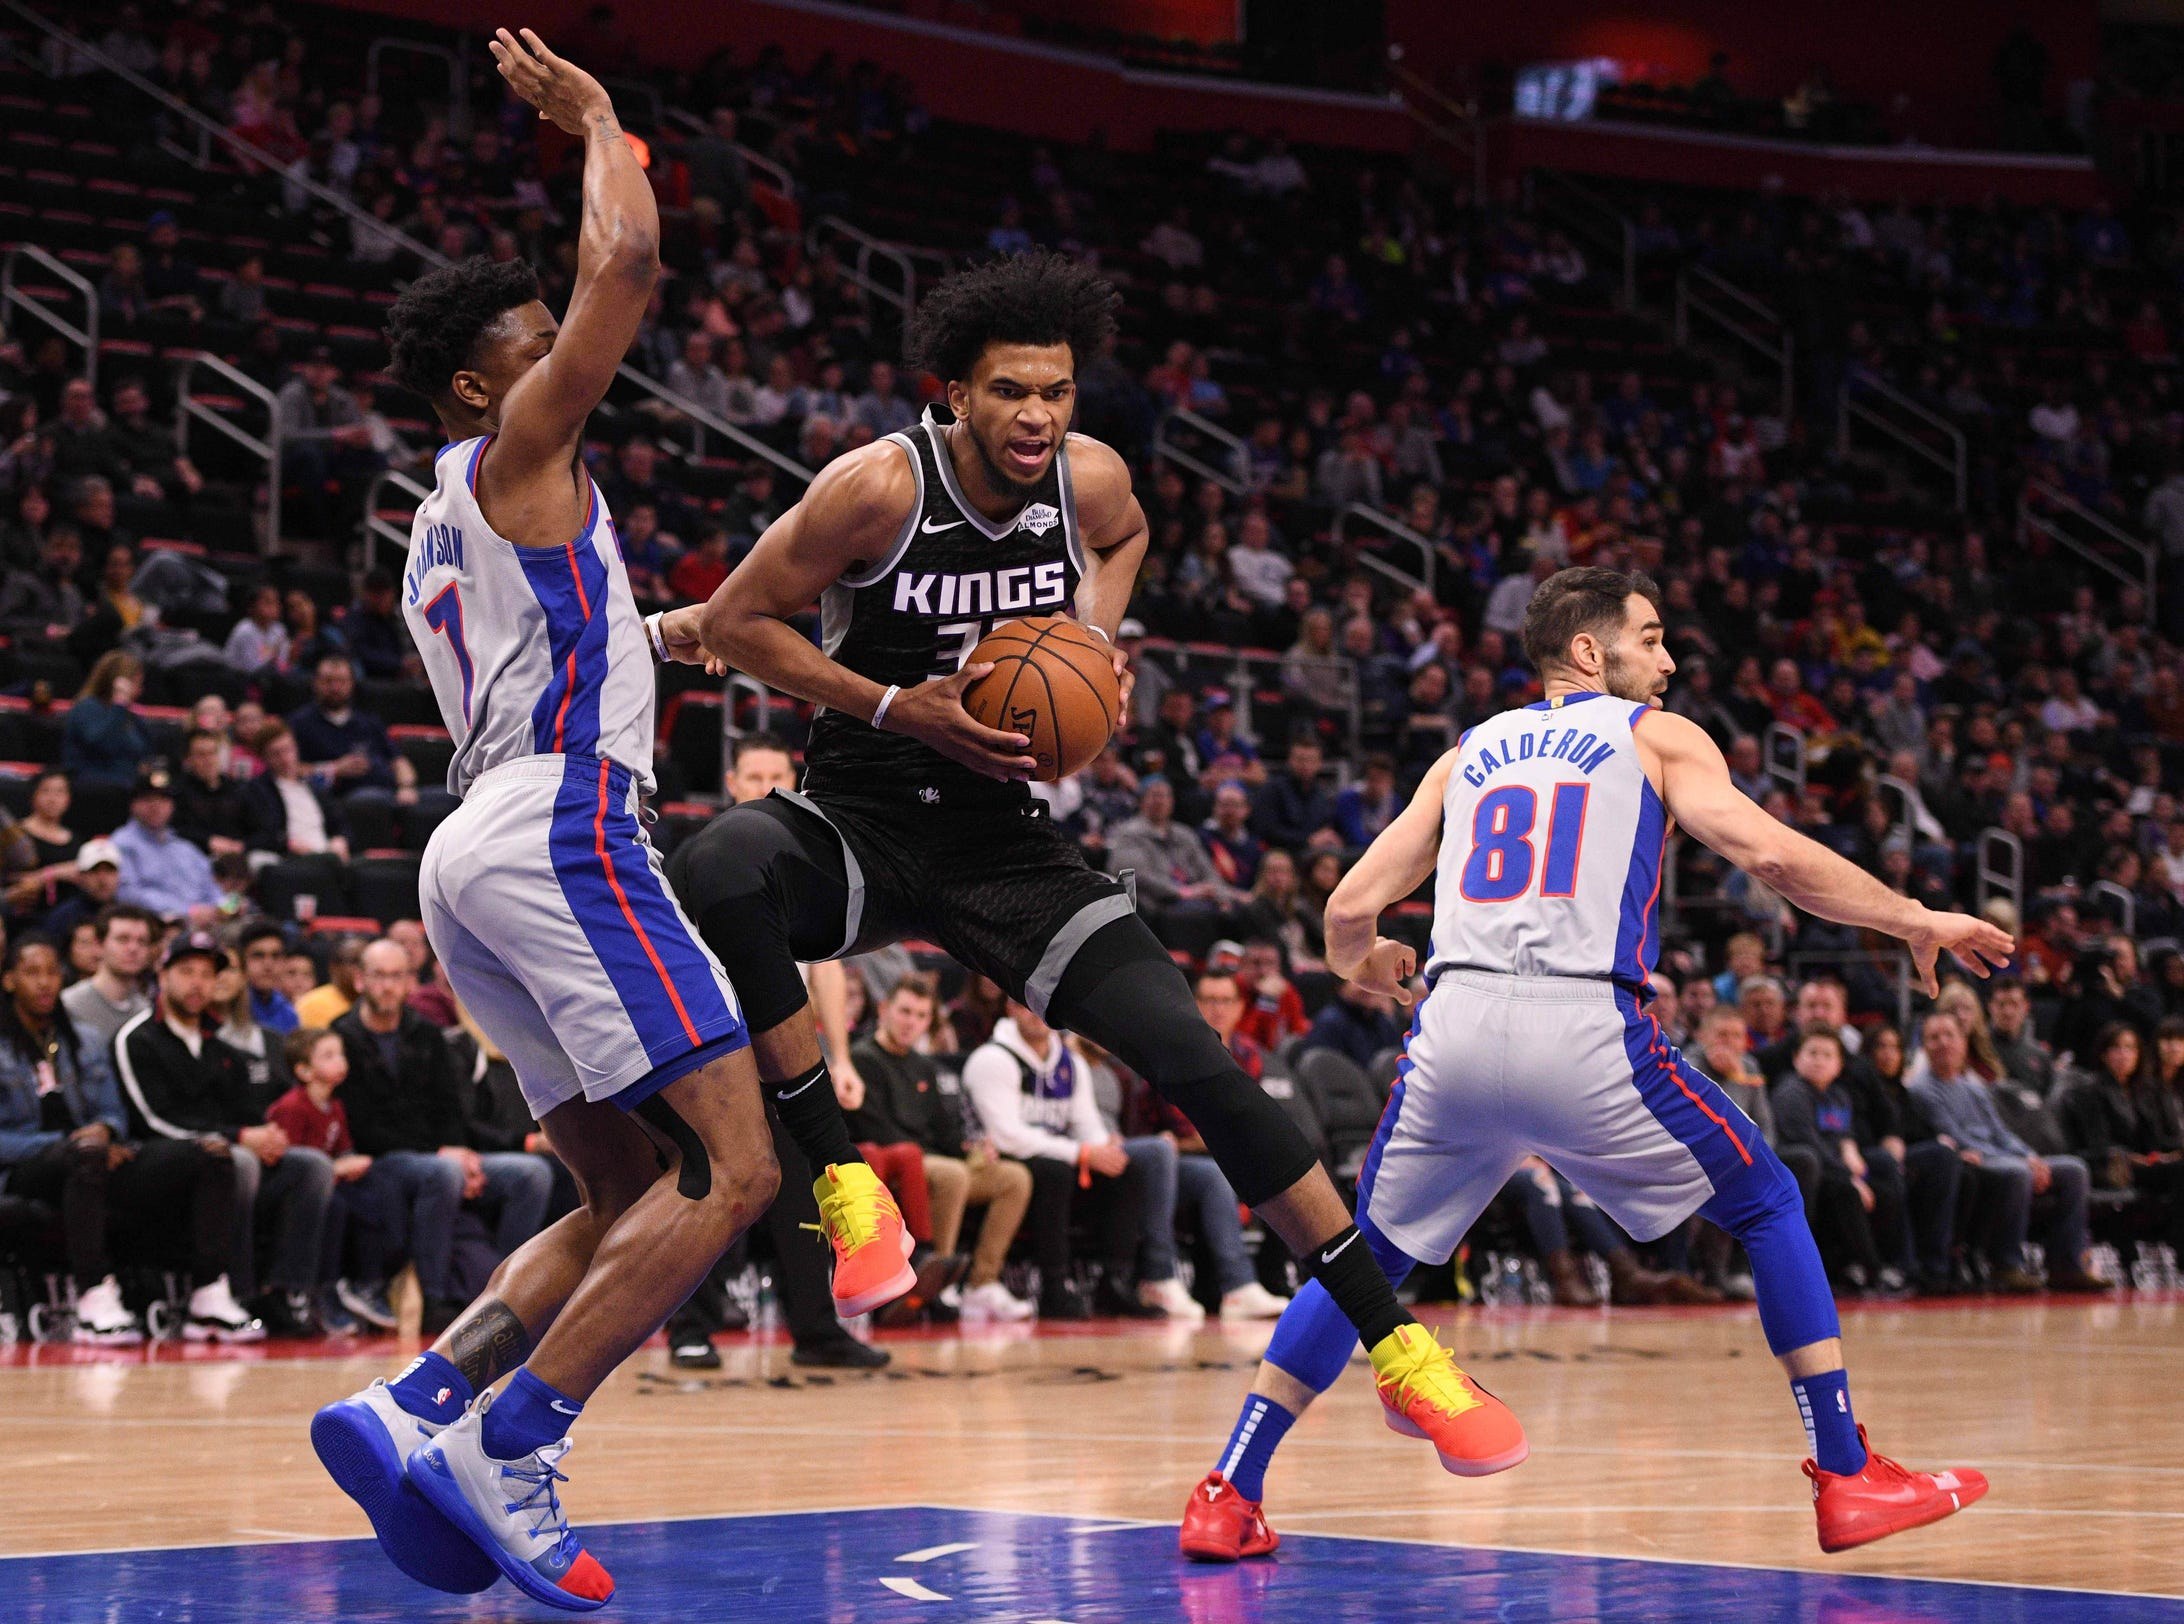 Sacramento Kings forward Marvin Bagley III (35) drives to the basket as Detroit Pistons forward Stanley Johnson (7) defends during the second quarter at Little Caesars Arena.